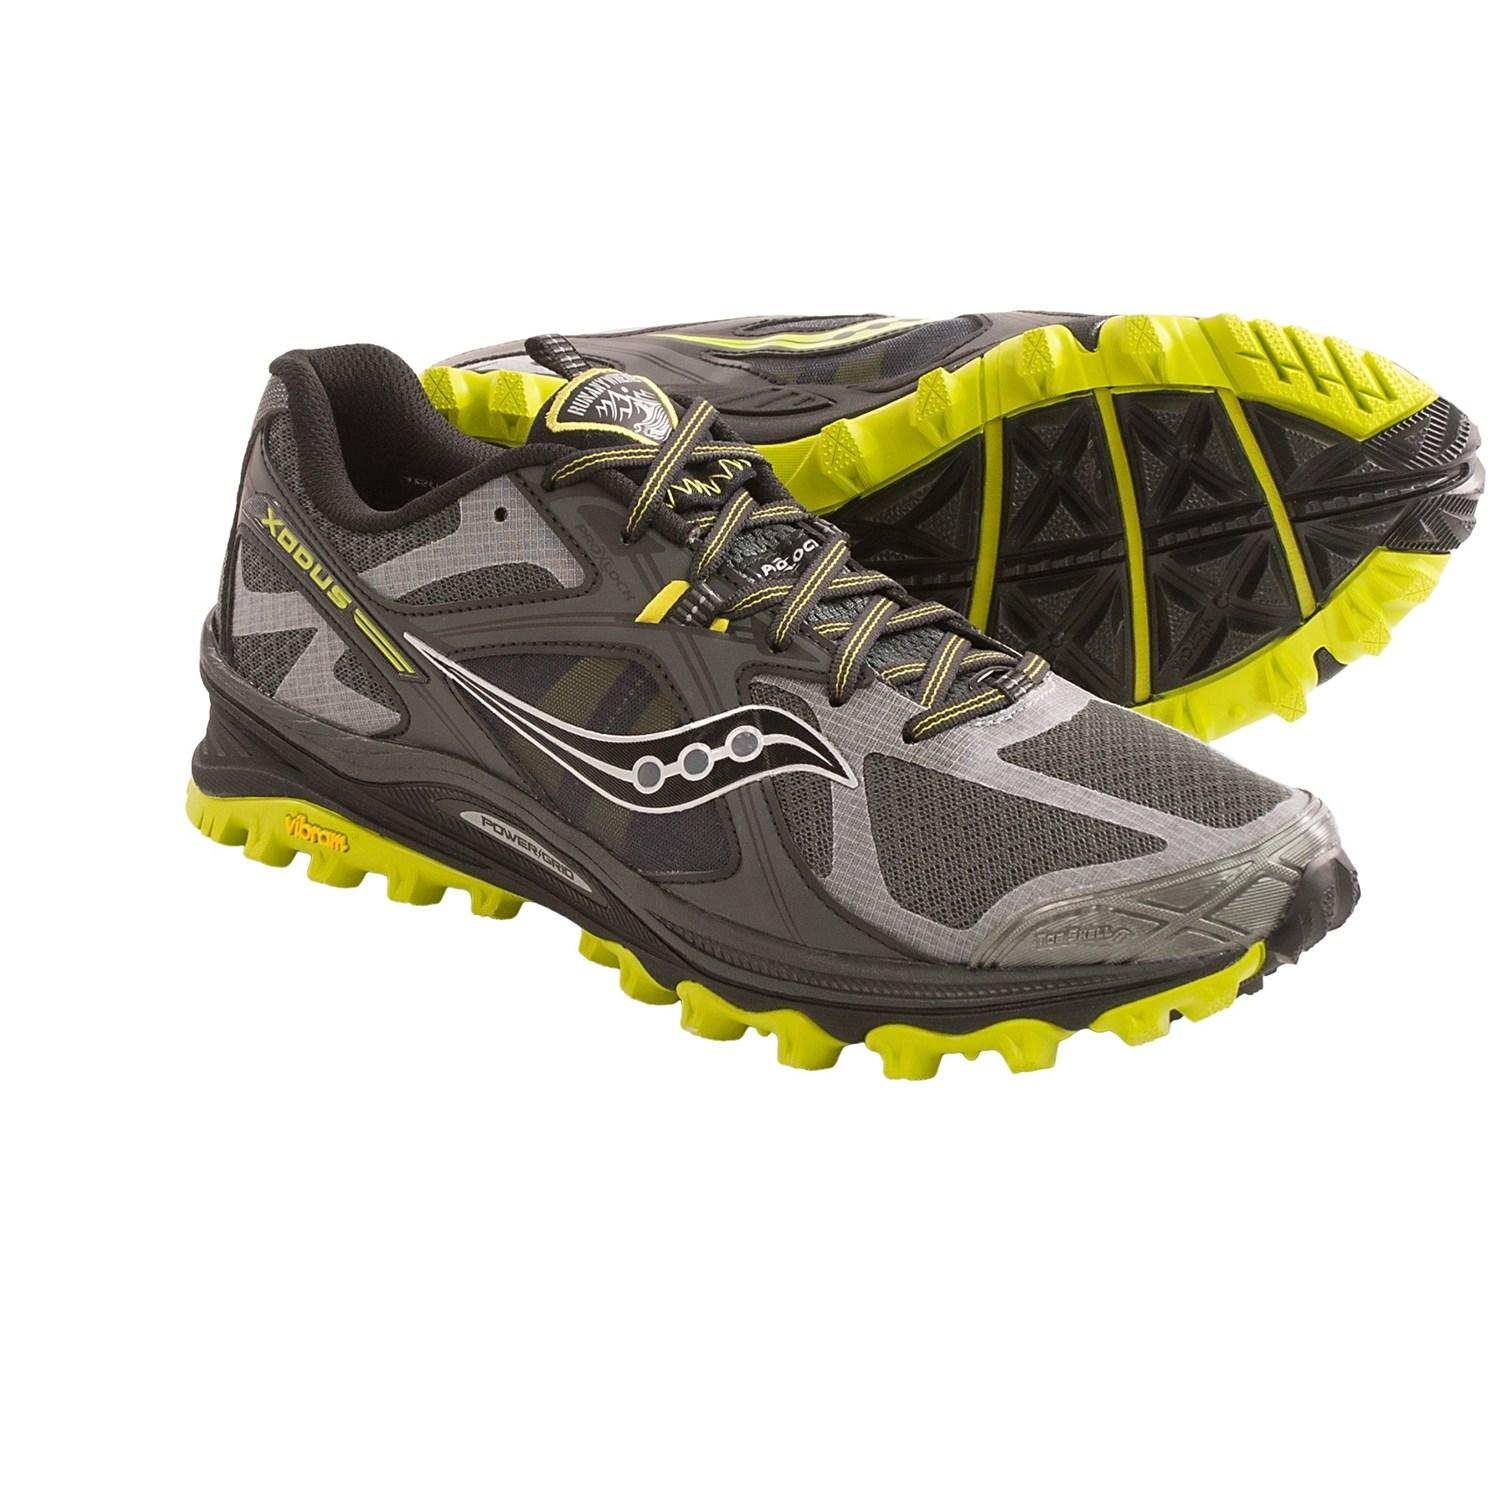 $53.97 Saucony Xodus 5.0 Trail Men's Running Shoes